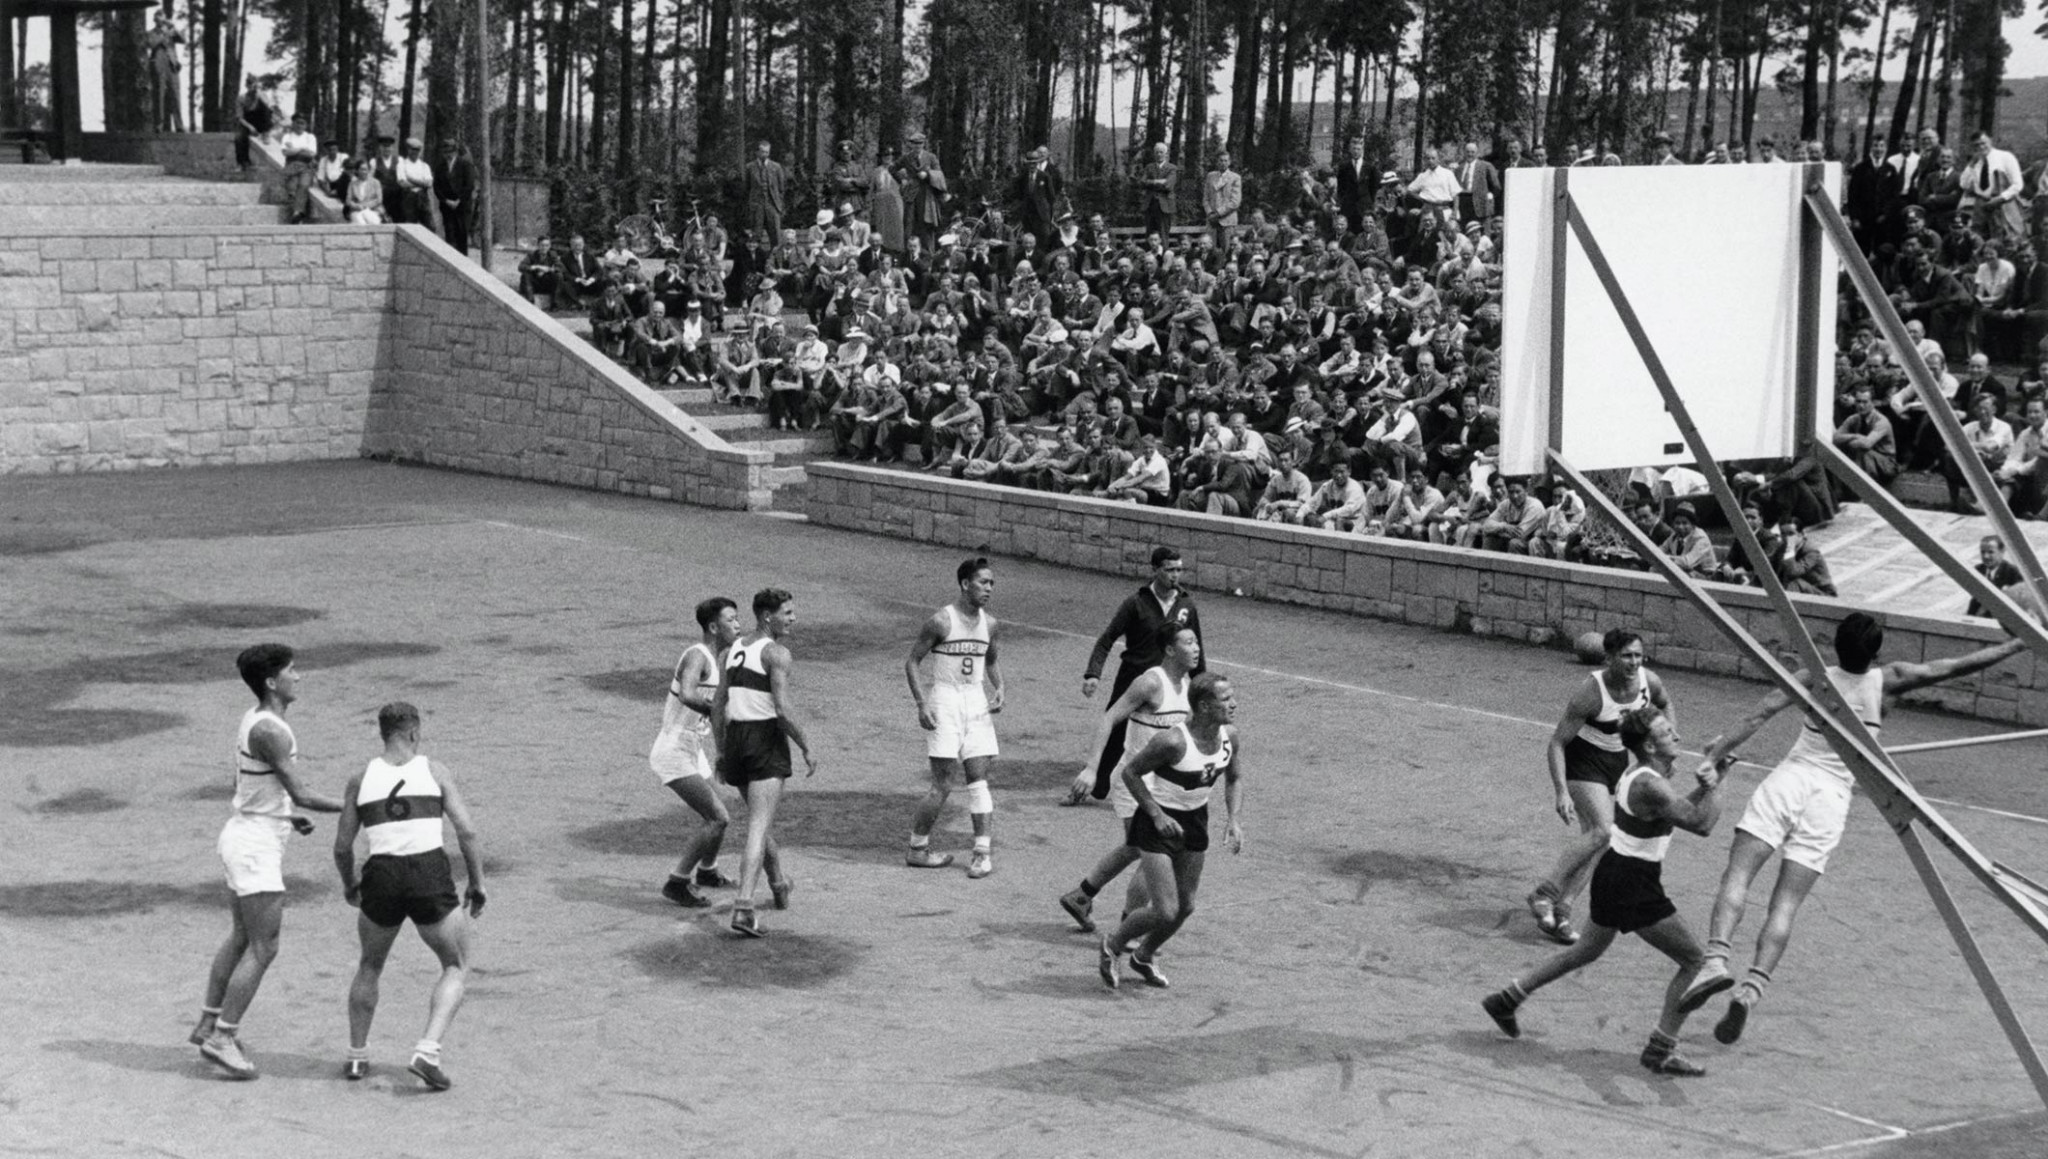 The first full Olympic basketball competition at the 1936 Berlin Games took place outdoors on sand and clay tennis courts ©Getty Images